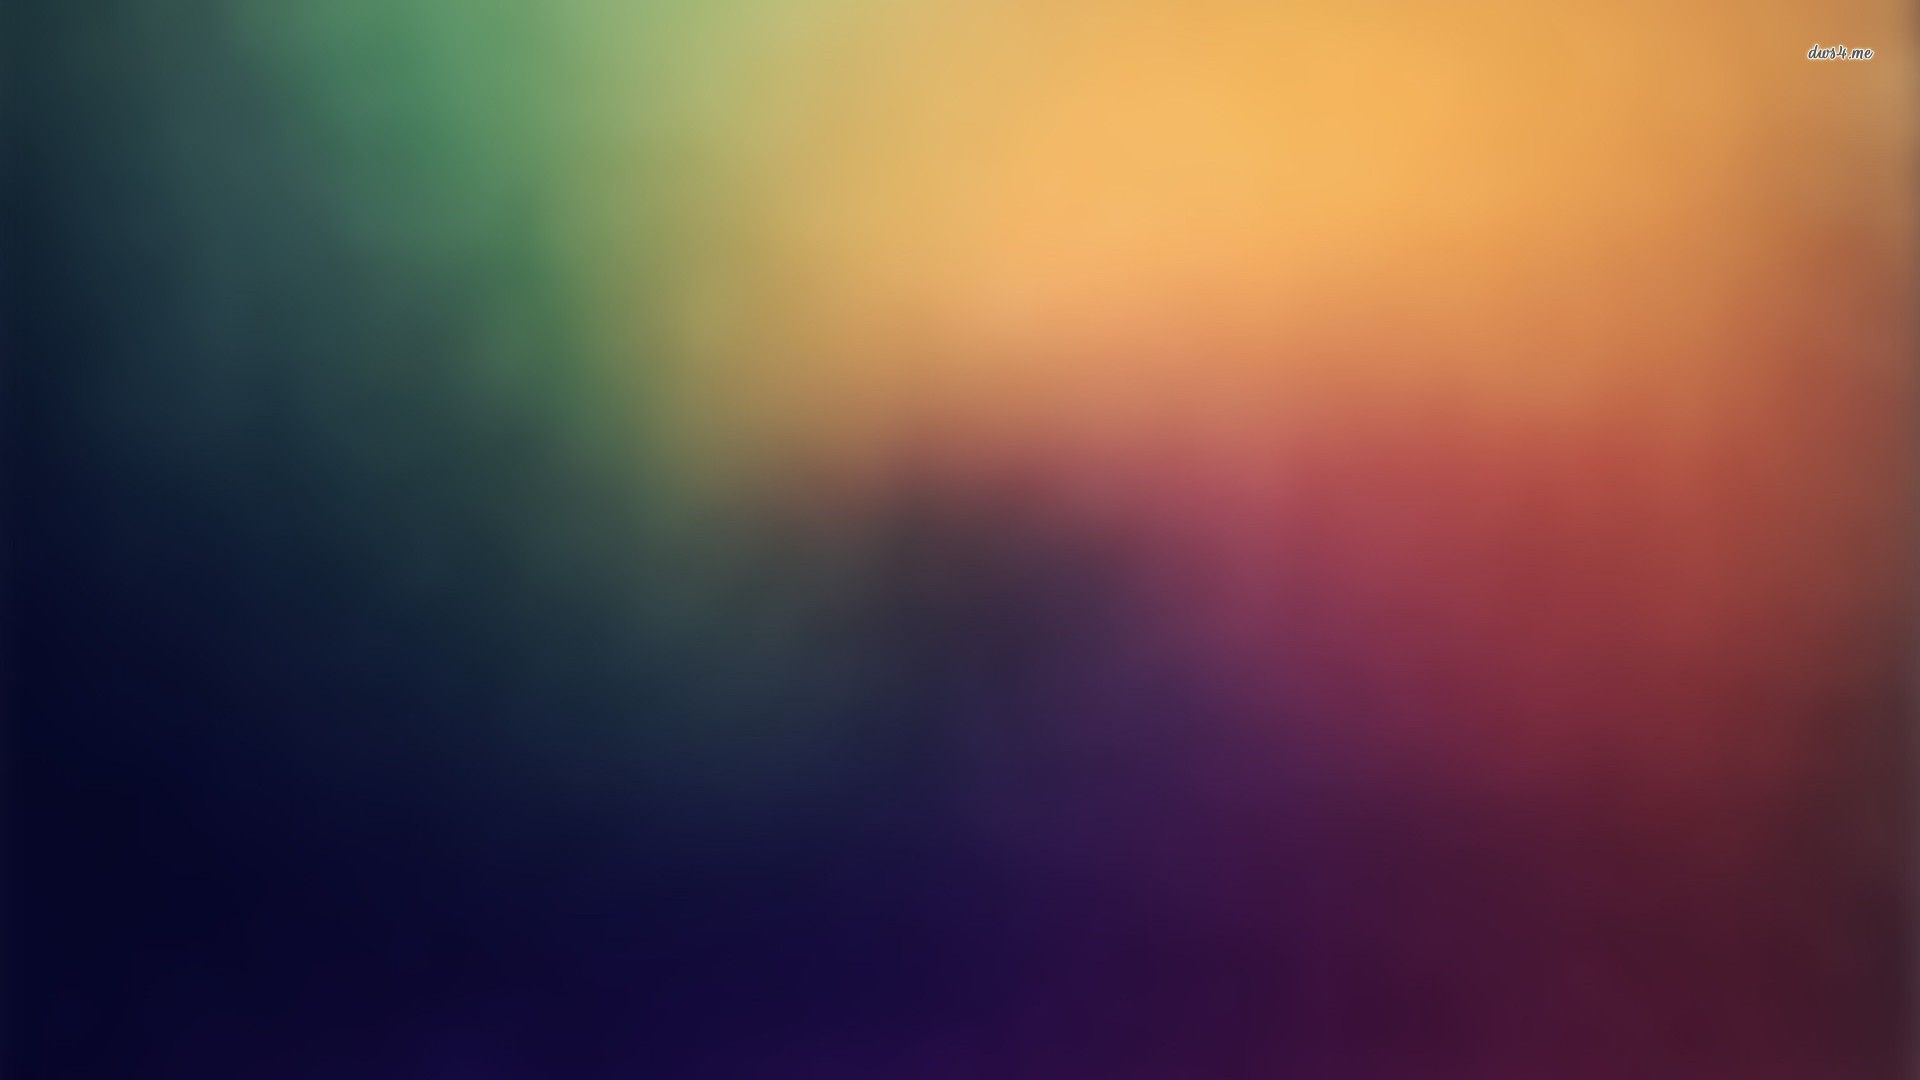 Gradient Wallpaper | HD Wallpapers Pulse